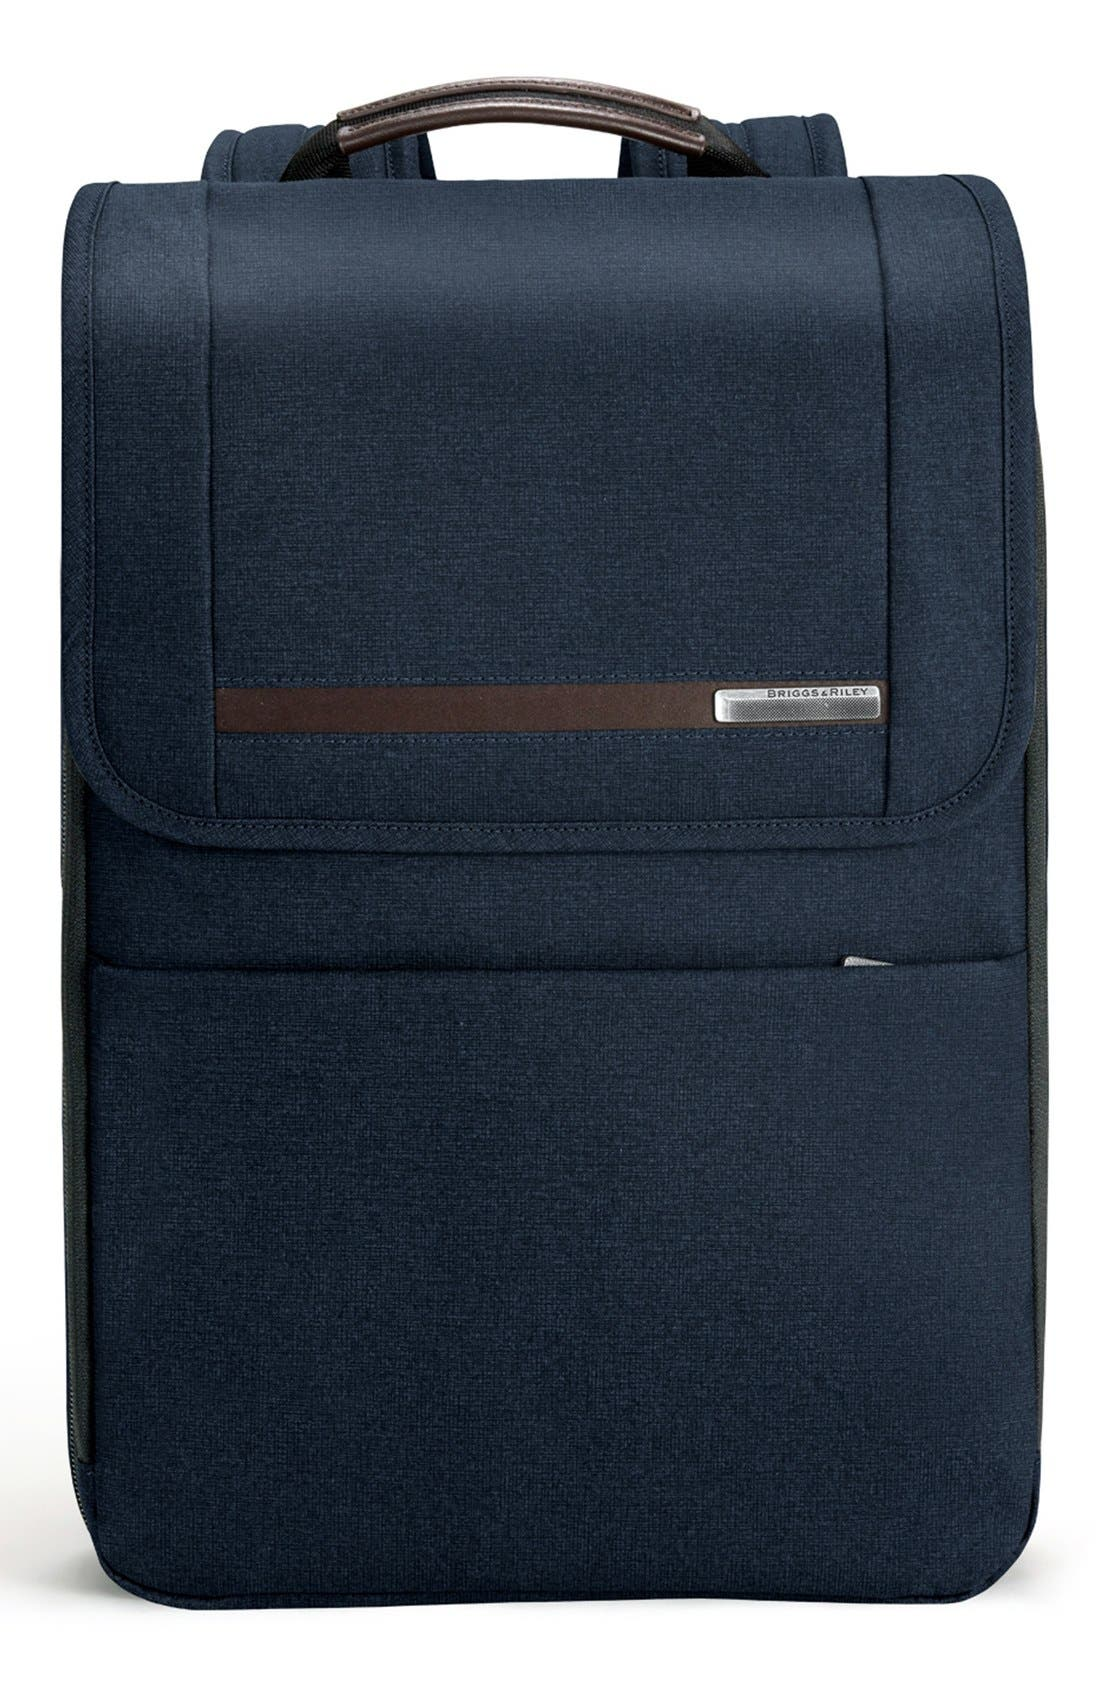 Kinzie Street Expandable Backpack,                         Main,                         color, Navy Blue